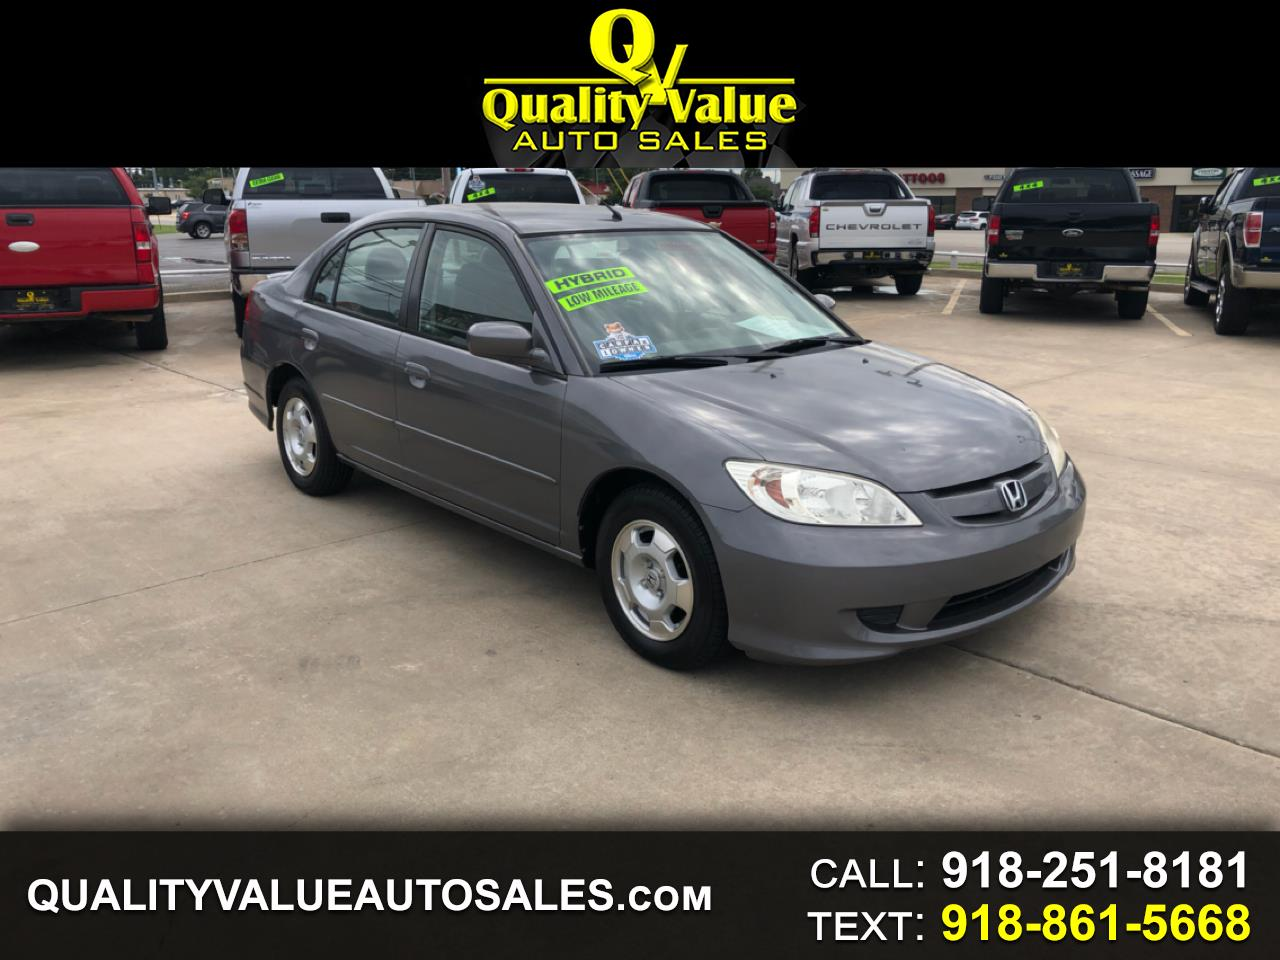 2004 Honda Civic Hybrid Sedan with CVT